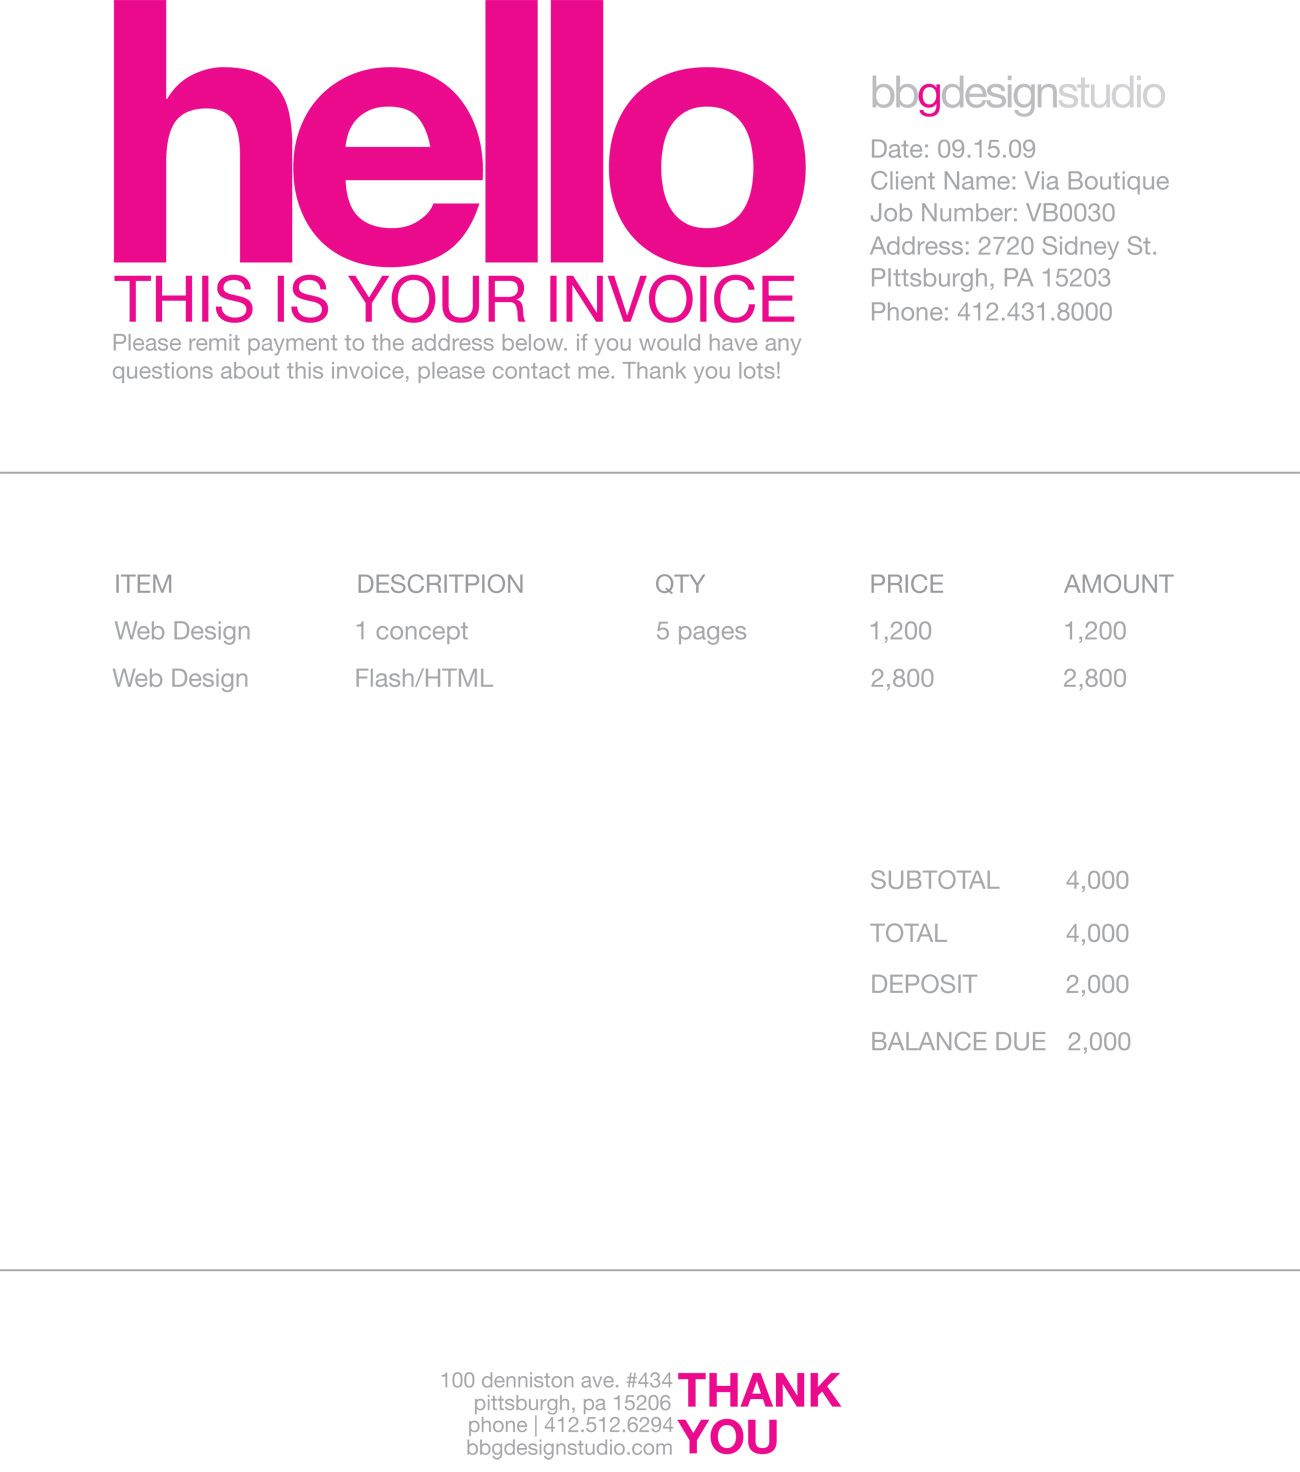 Pigbrotherus  Inspiring  Images About Invoice Design On Pinterest With Goodlooking Receipt Organization Besides Create A Receipt Online Furthermore Salmon Receipt With Beauteous Carbon Copy Receipts Also Print Fake Receipts In Addition Receipt Fraud And Fake Gas Receipt As Well As Receipt Examples Additionally Toys R Us Gift Receipt Lookup From Pinterestcom With Pigbrotherus  Goodlooking  Images About Invoice Design On Pinterest With Beauteous Receipt Organization Besides Create A Receipt Online Furthermore Salmon Receipt And Inspiring Carbon Copy Receipts Also Print Fake Receipts In Addition Receipt Fraud From Pinterestcom